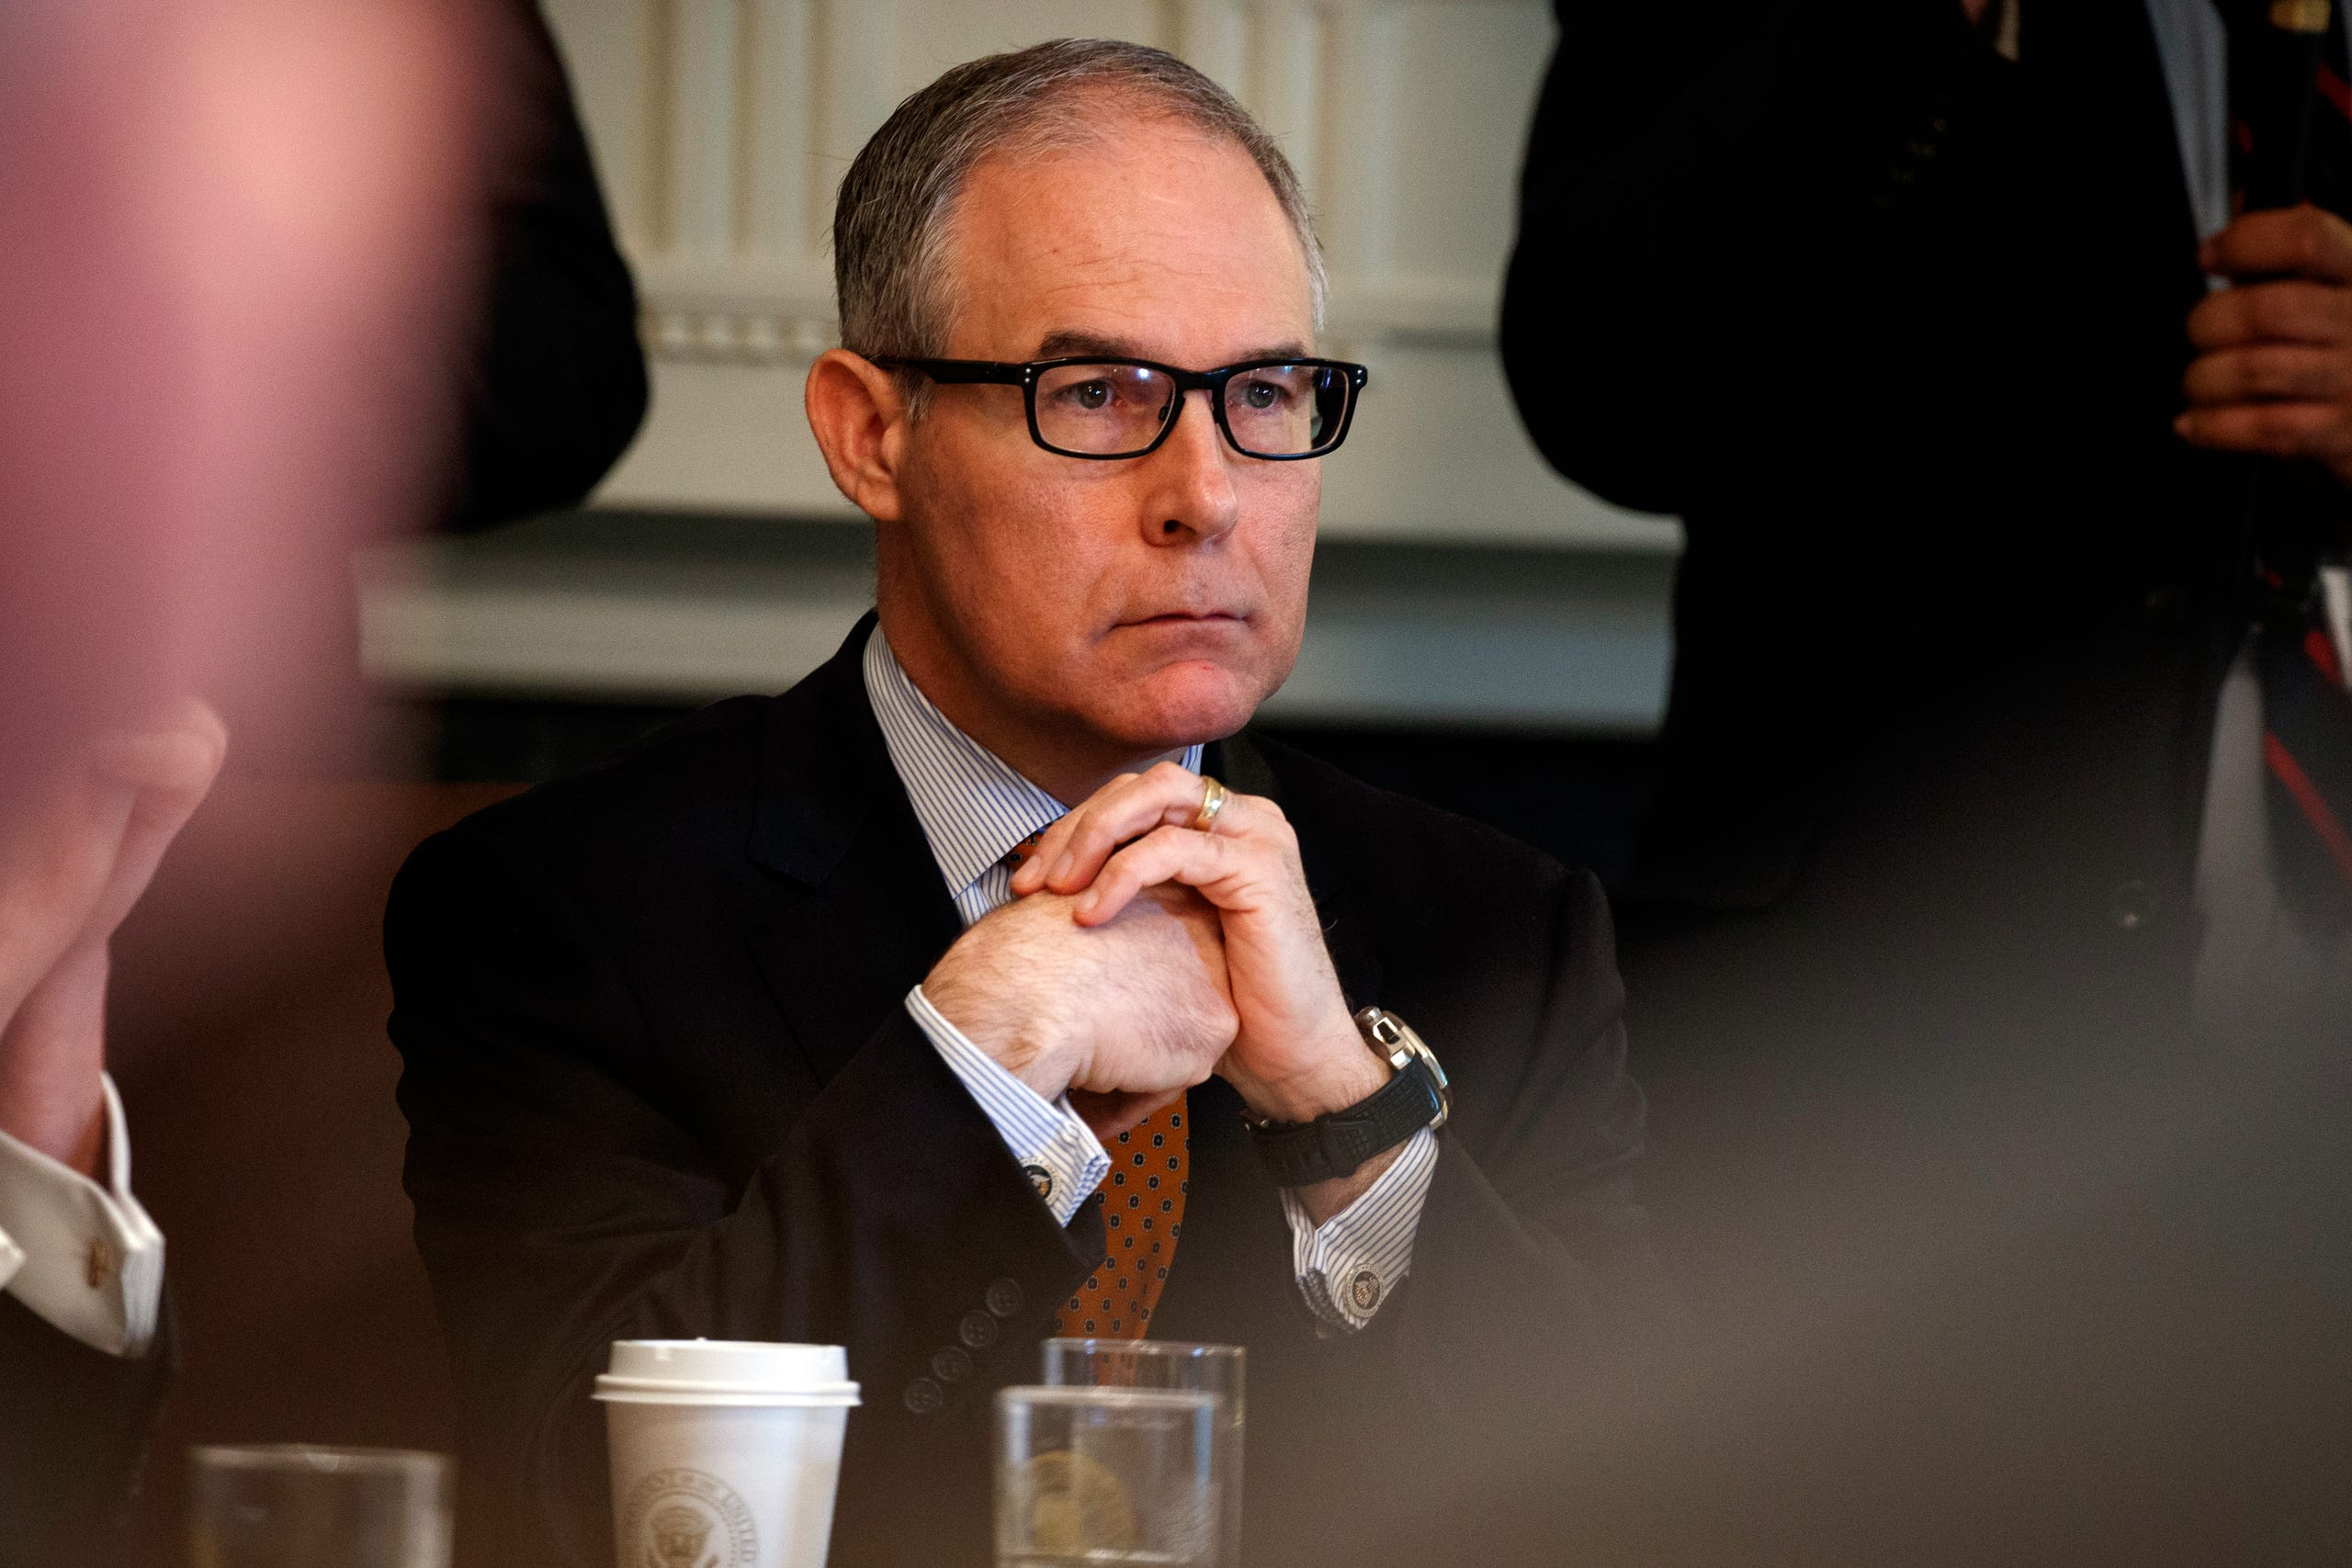 Environmental Protection Agency administrator Scott Pruitt listens as President Trump speaks during a cabinet meeting at the White House in Washington on June 21, 2018. Pruitt, a former Oklahoma state senator and two-term Republican attorney general, resigned suddenly July 5, 2018 amid ethics investigations, including ones examining his lavish spending on first-class airline seats and a $43,000 soundproof booth for making private phone calls.